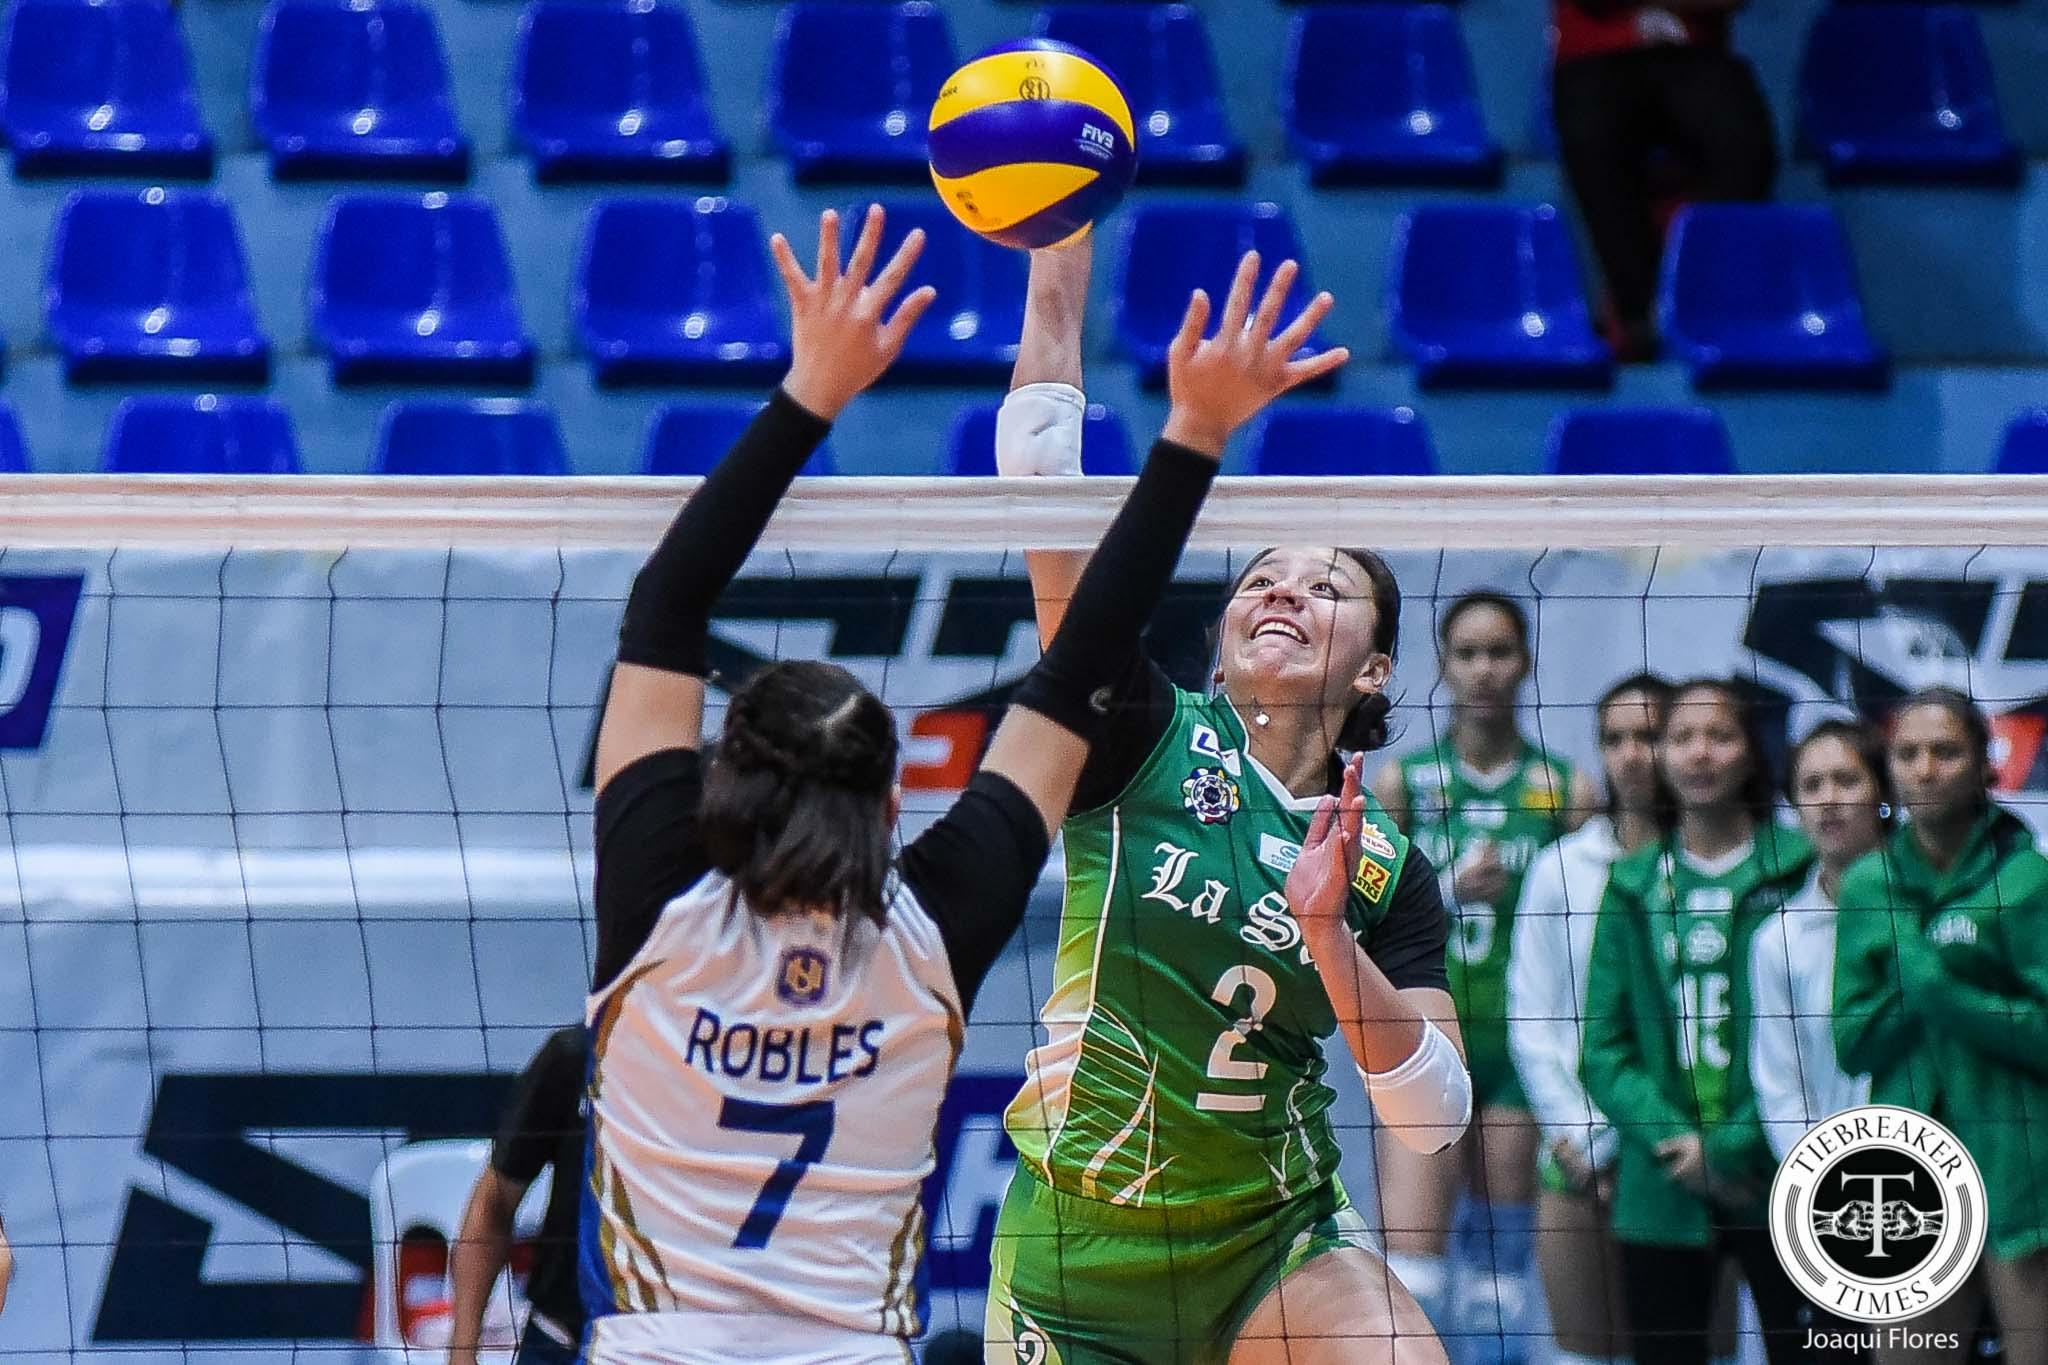 Tiebreaker Times DLSU Lady Spikers escape fiery Princess Robles, NU for third win DLSU News NU UAAP Volleyball  UAAP Season 81 Women's Volleyball UAAP Season 81 Ramil De Jesus Princess Robles NU Women's Volleyball Norman Miguel May Luna Ivy Lacsina DLSU Women's Volleyball Carmel Saga Aduke Ogunsanya